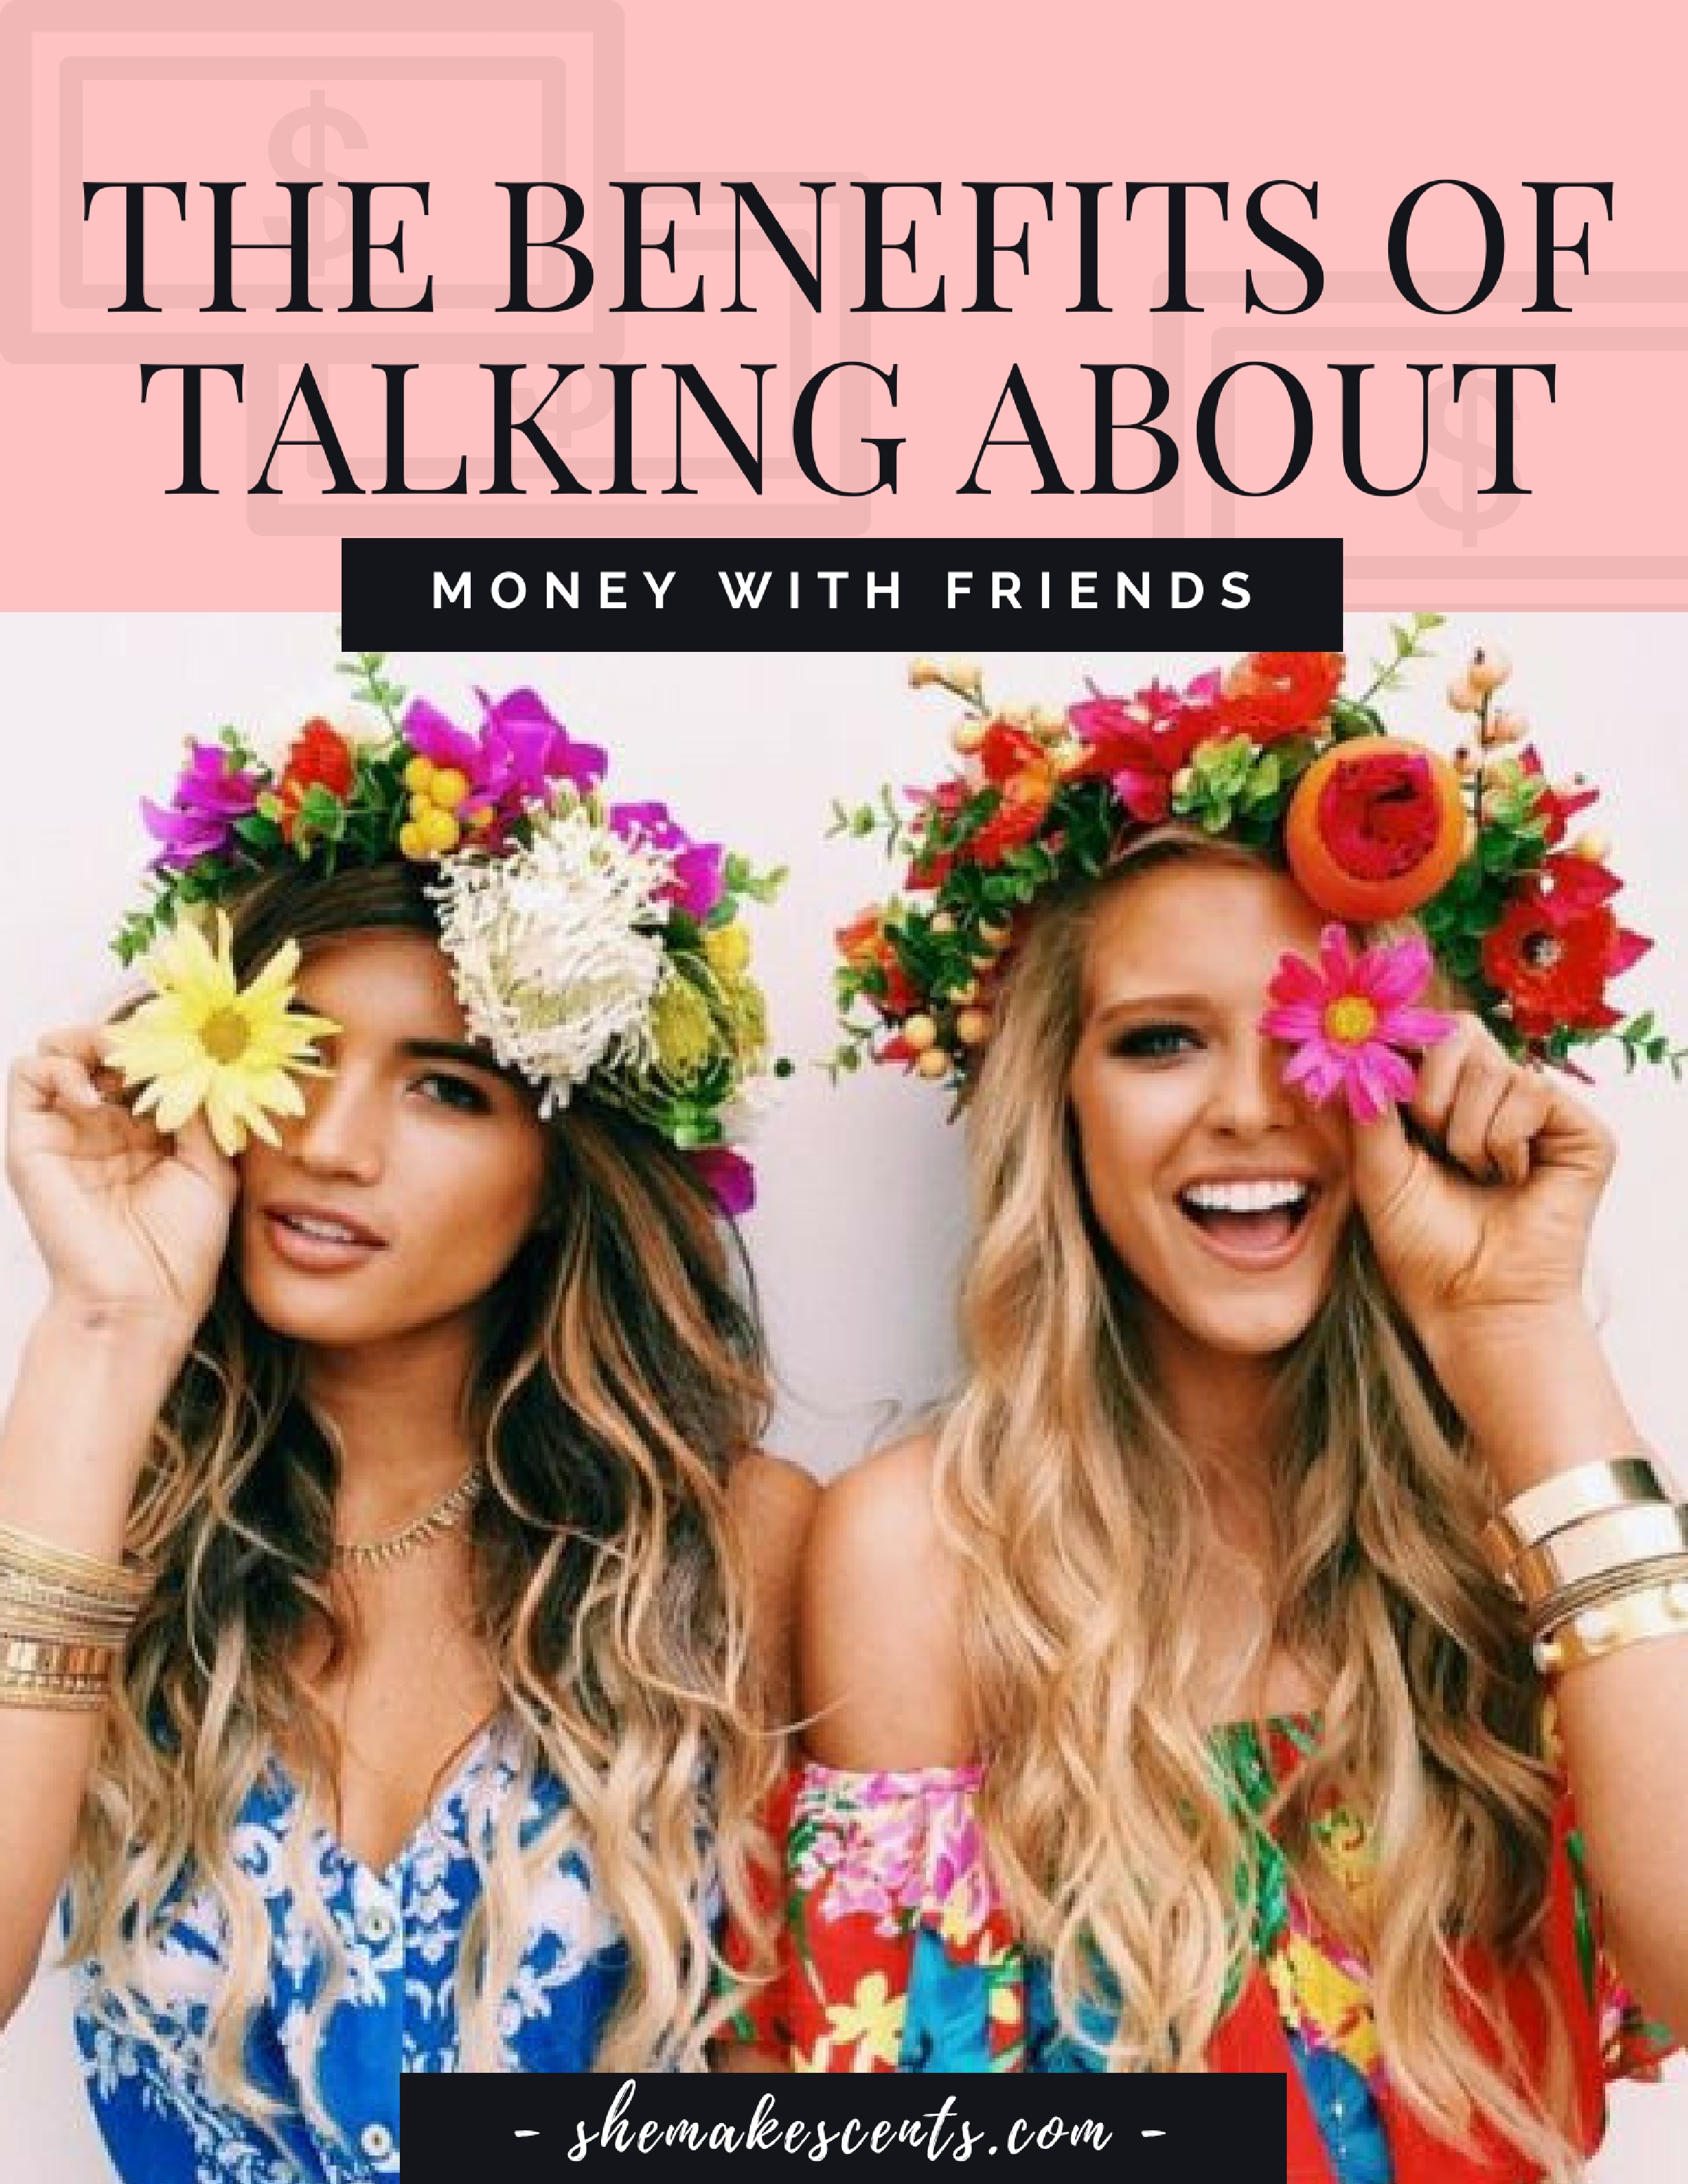 Benefits of Talking About Money with Friends from @shemakescents.